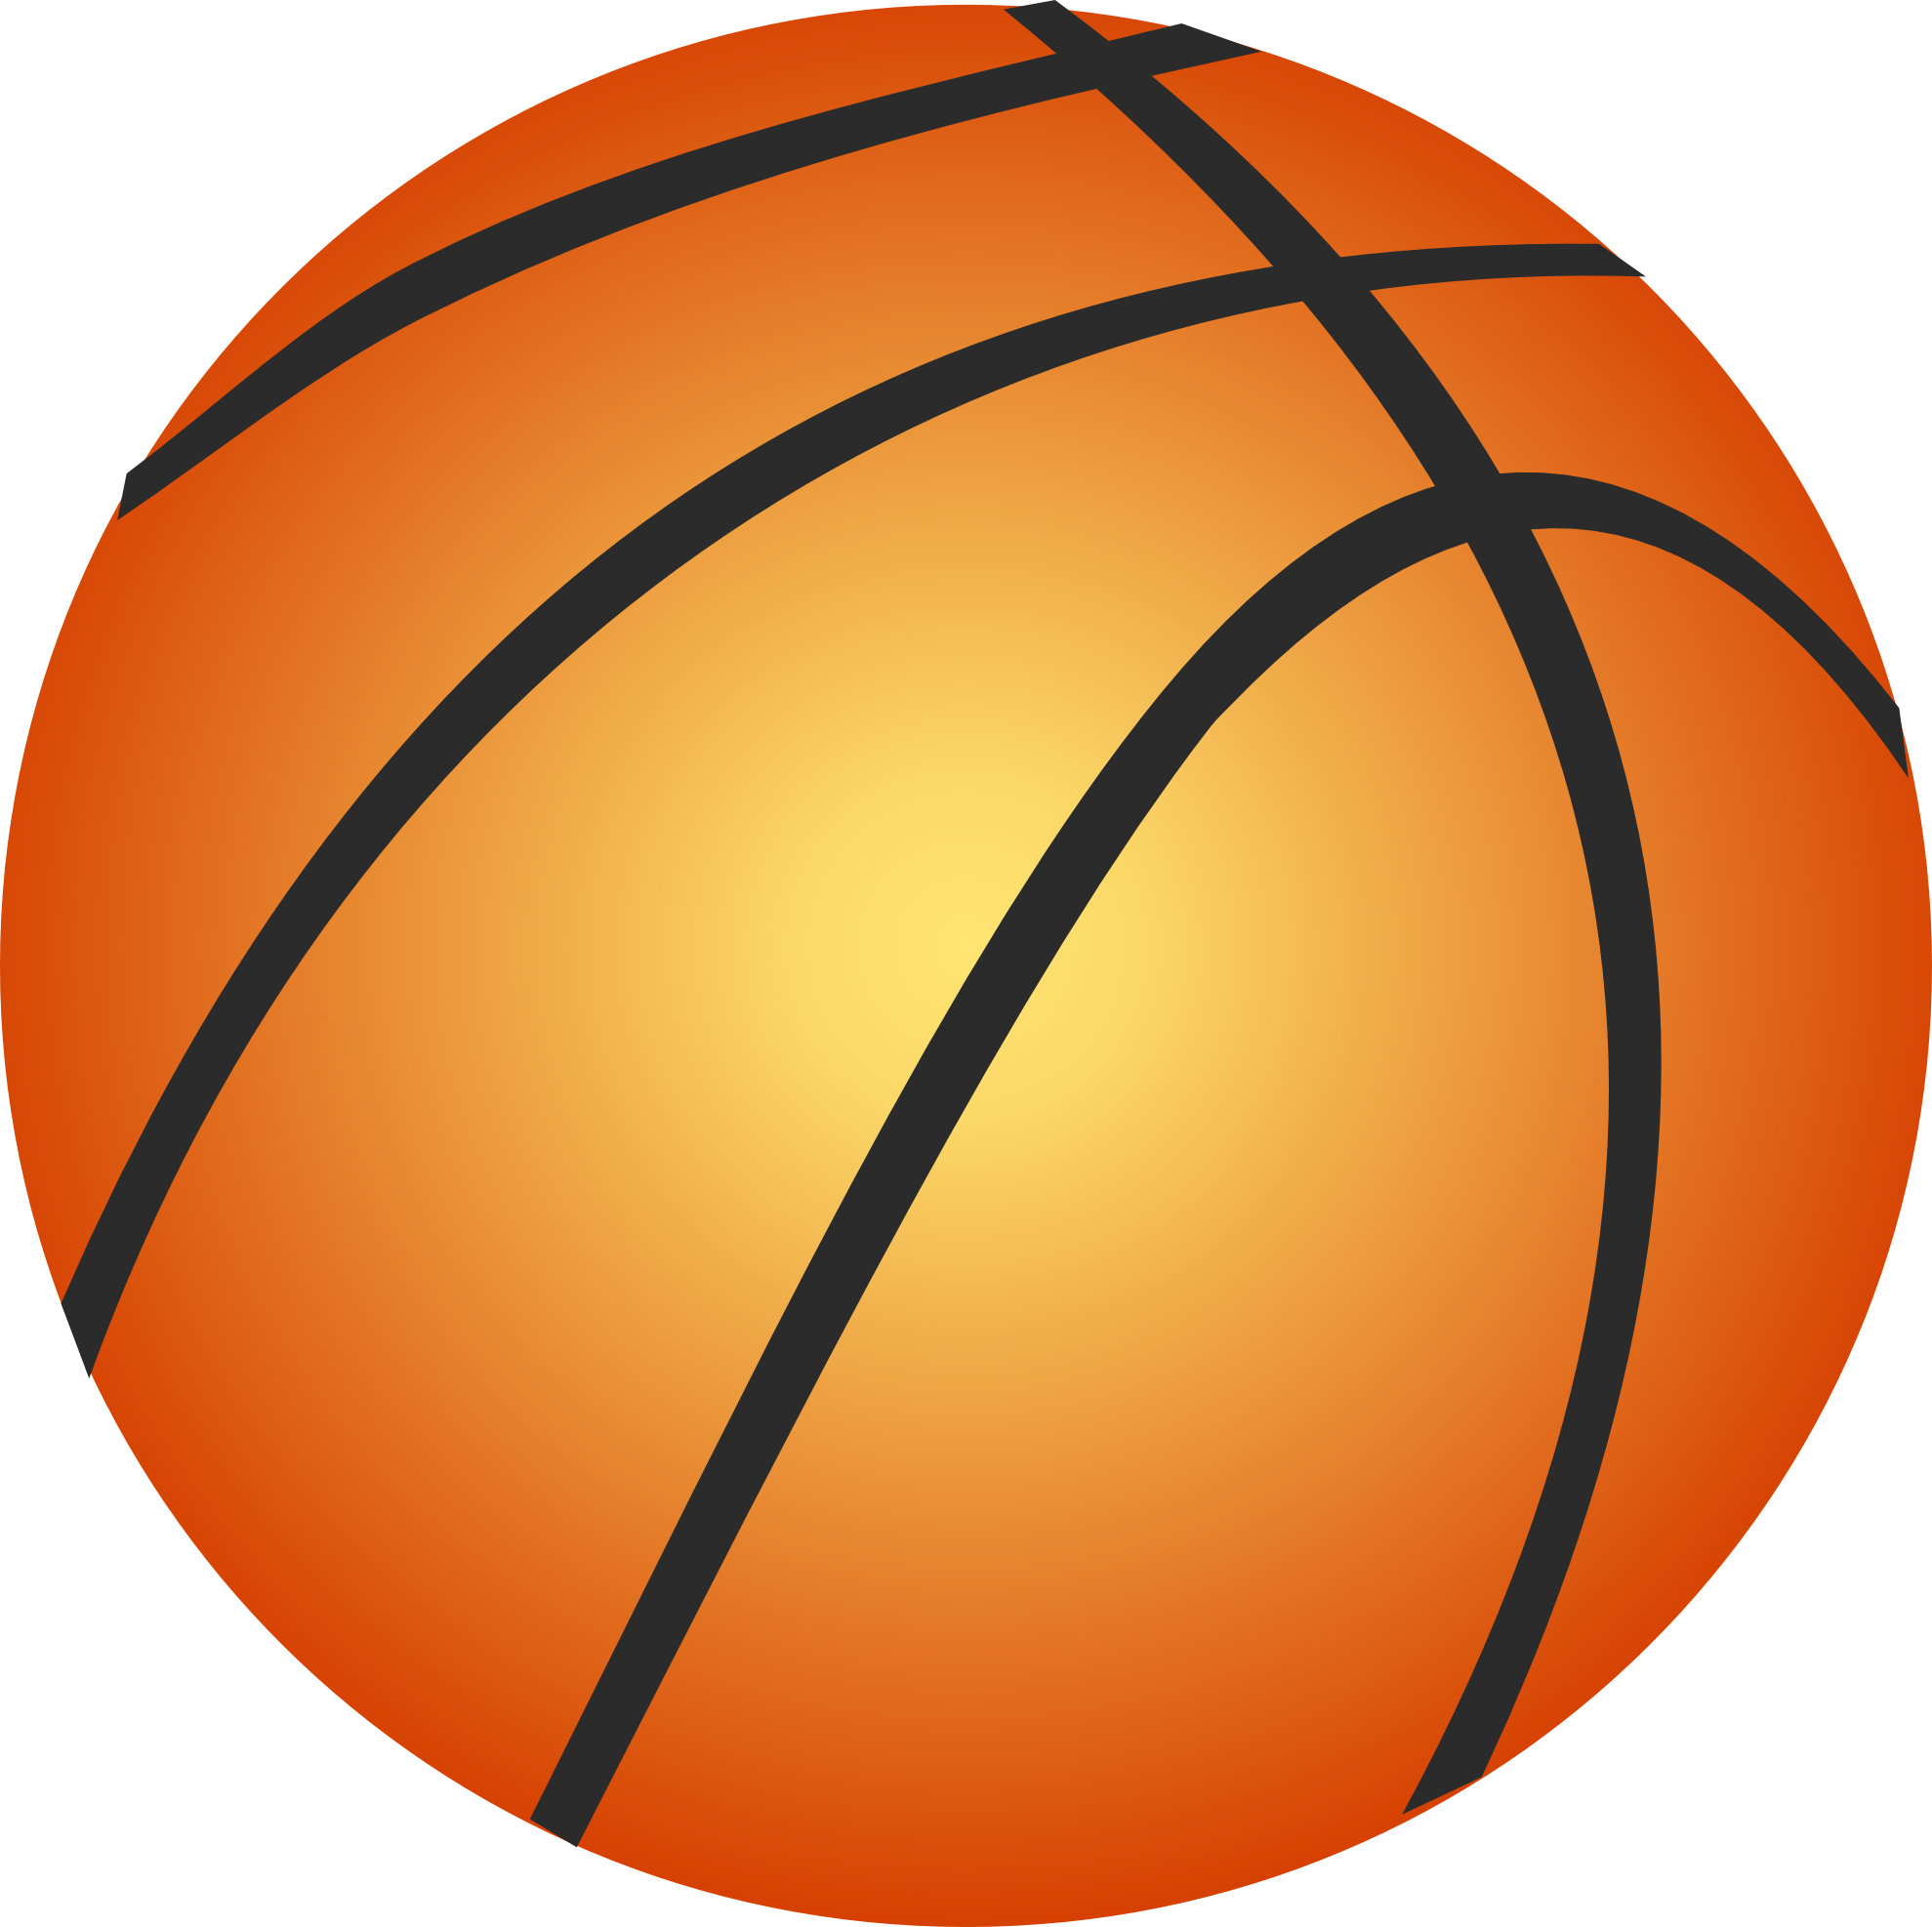 Basketball png clipart. Three isolated stock photo